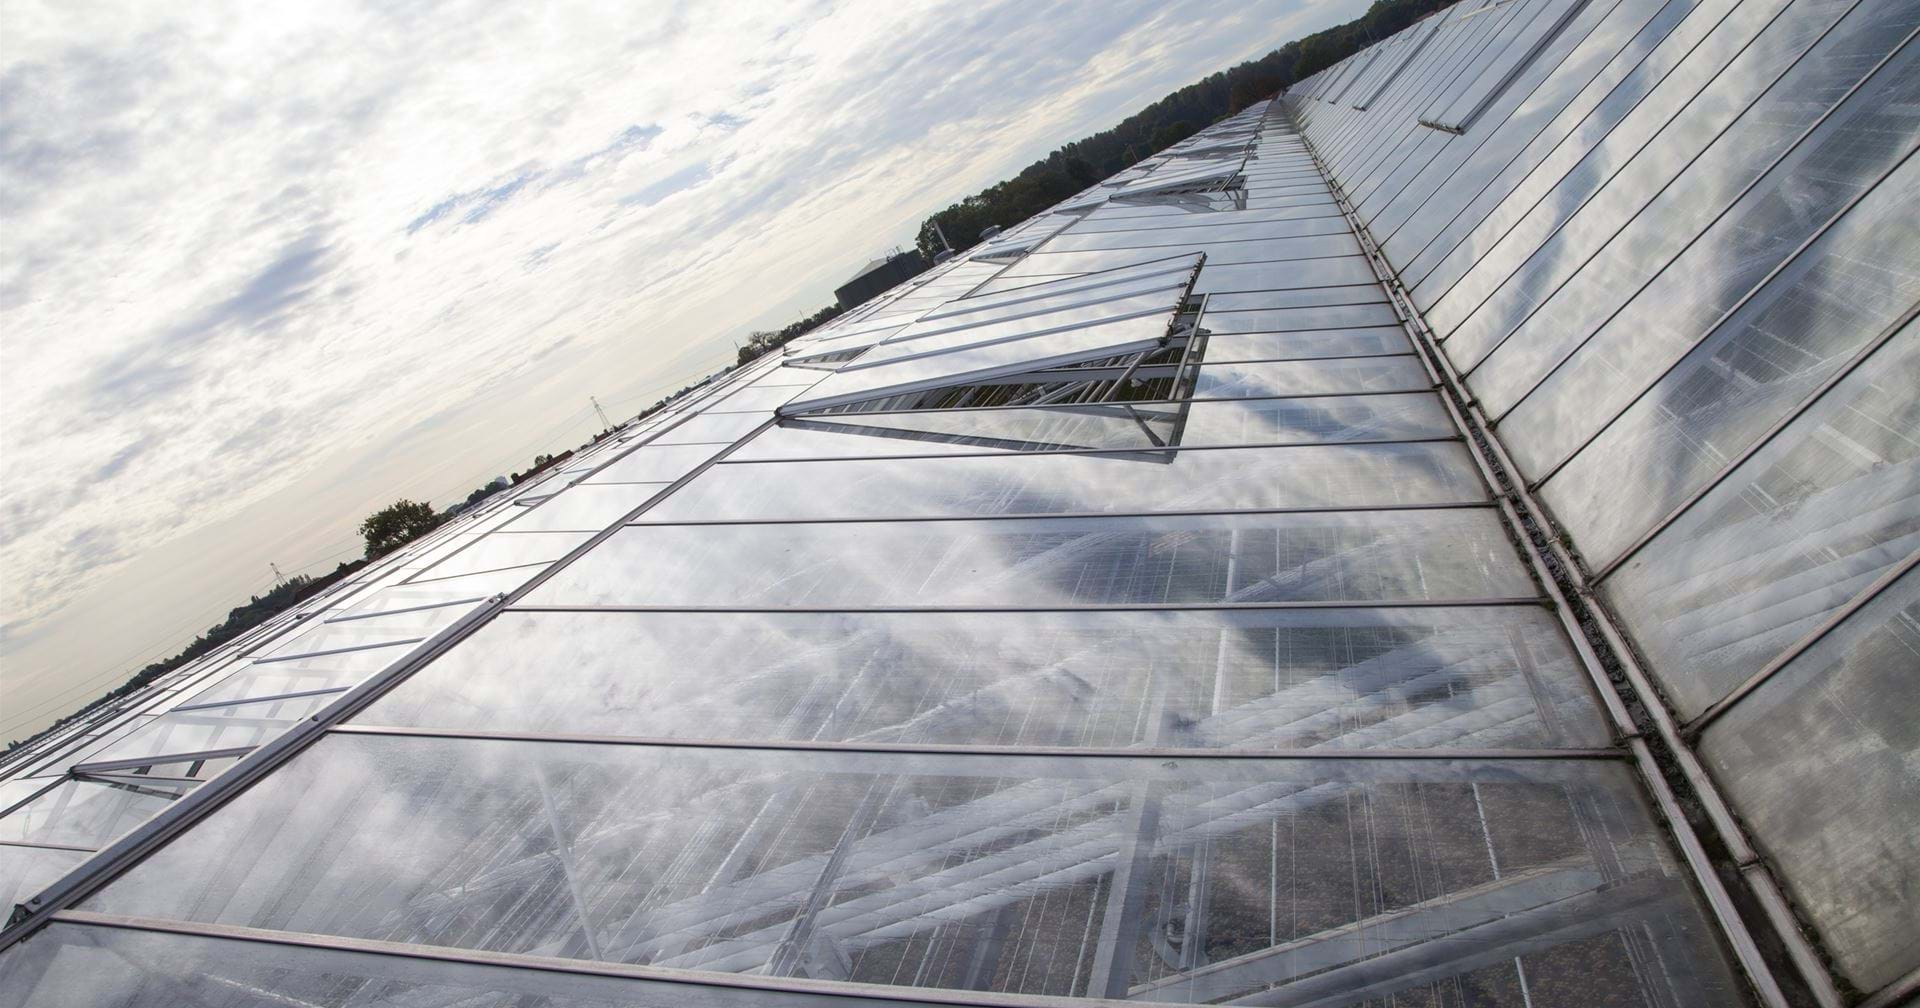 Solis plant Heenweg - Gakon Horticultural Projects - Turn-key Greenhouse Projects